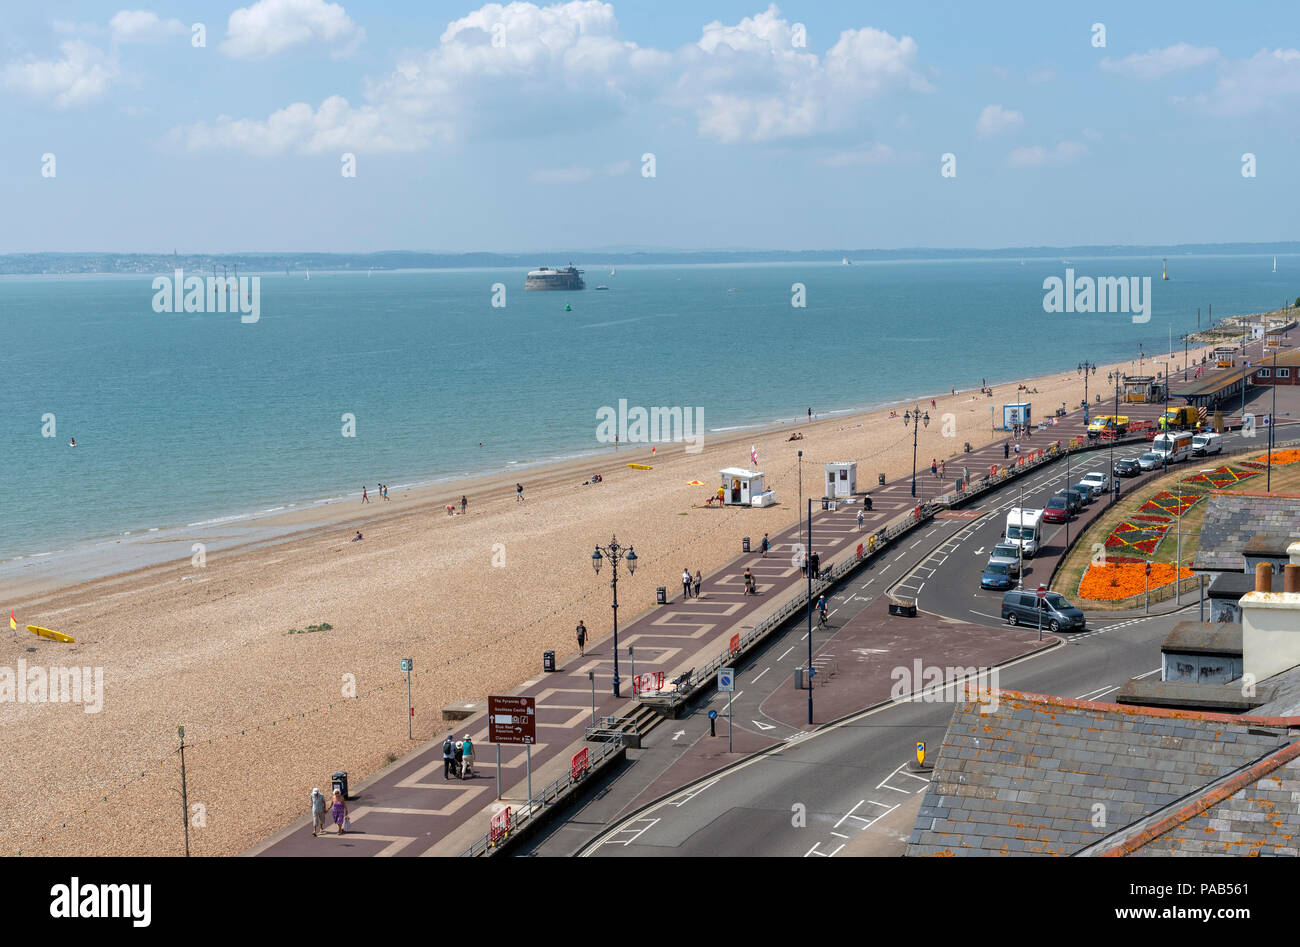 Southsea, Portsmouth, southern England, UK An overview of the seafront on South Parade in Southsea with the Isle of Wight in the background - Stock Image